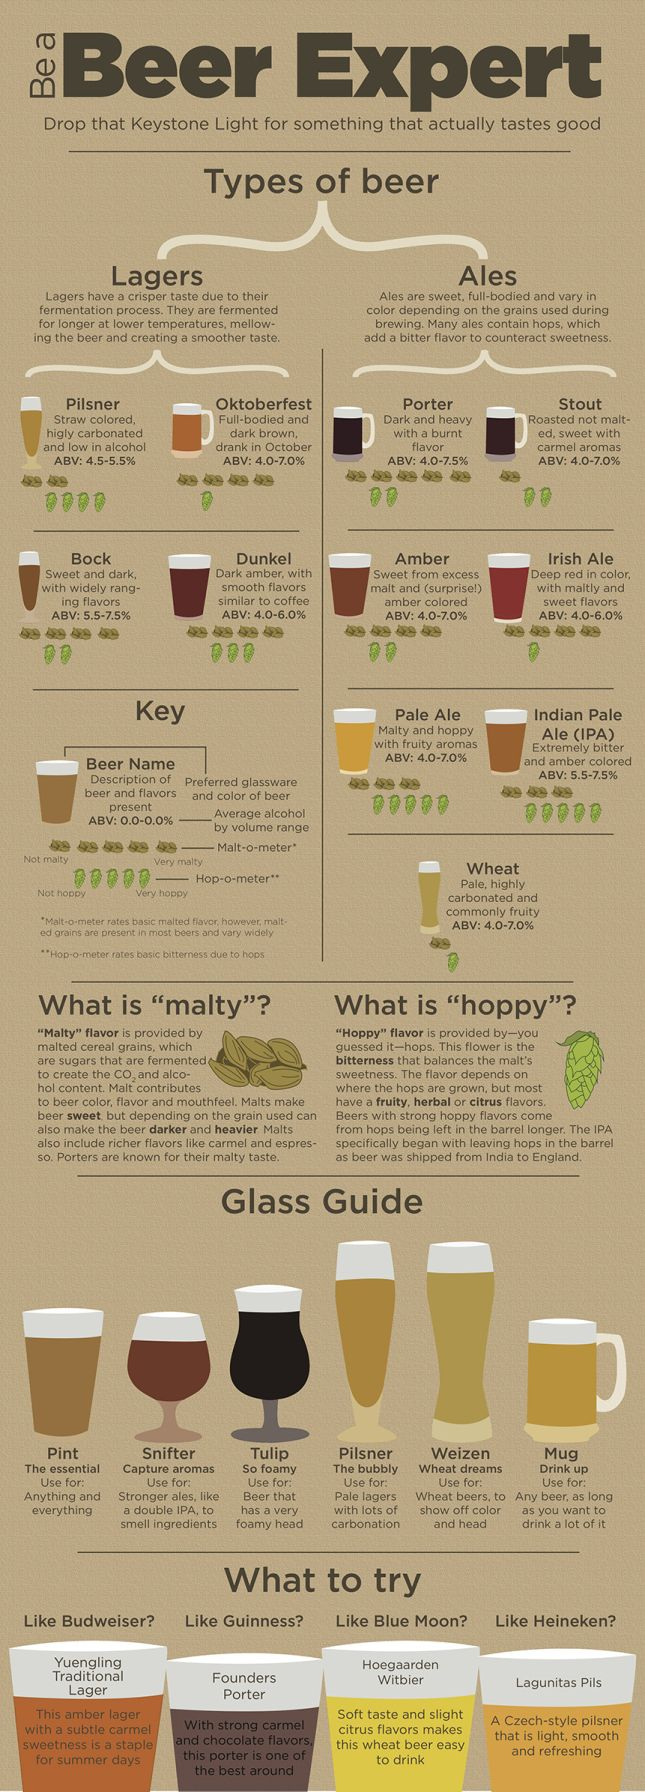 Beer Guide. I don't really like the beer I've had before, maybe this will help me find one I like?